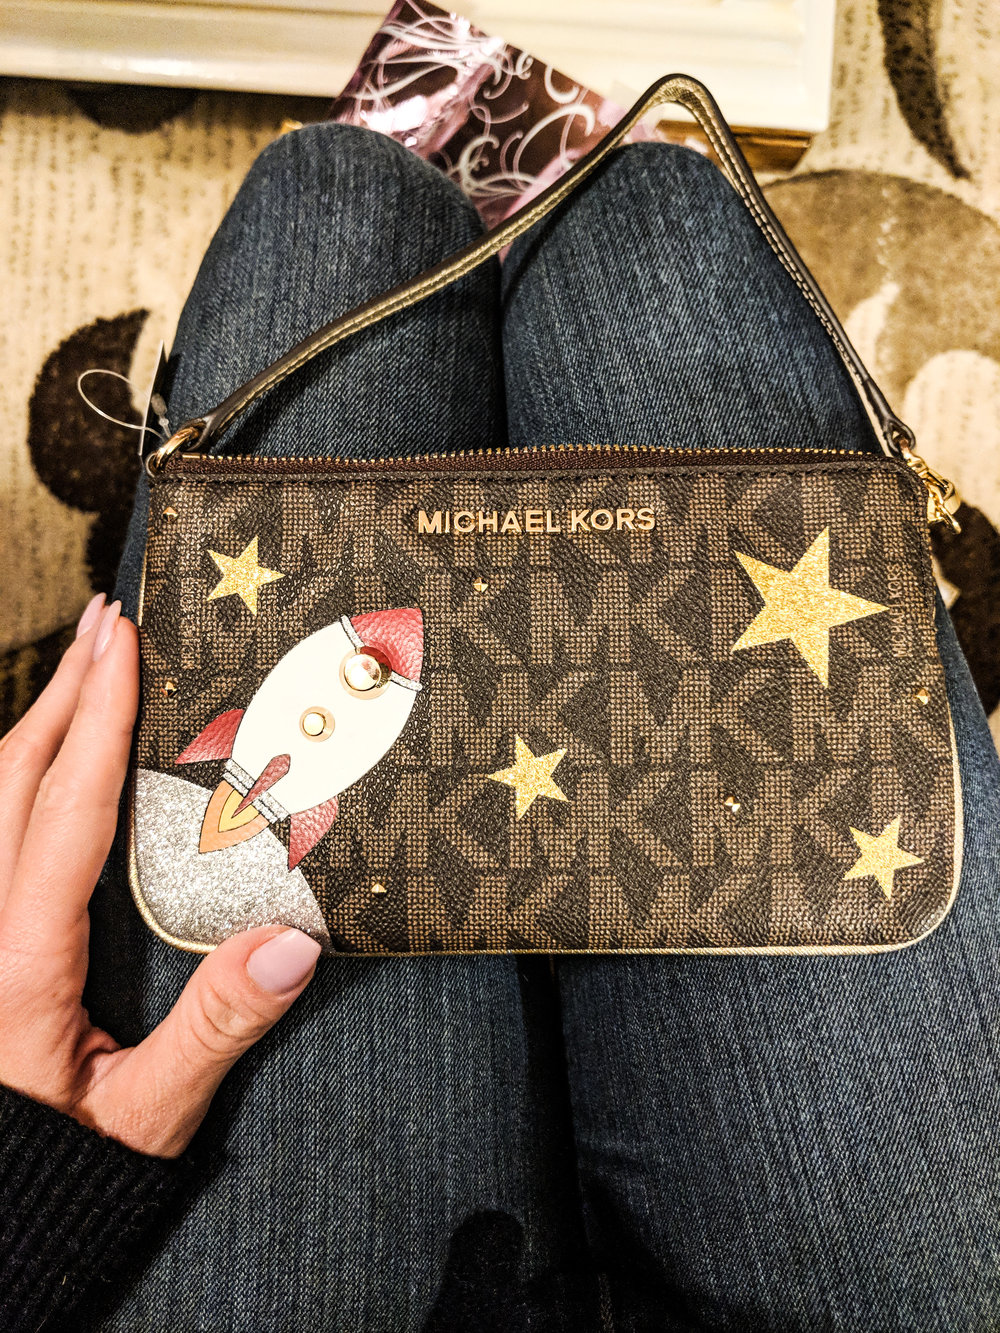 Rocket Clutch   Michael Kors limited edition rocket clutch - this is sold out on Amazon / Michael Kors, so I'm linking to one on Ebay here.